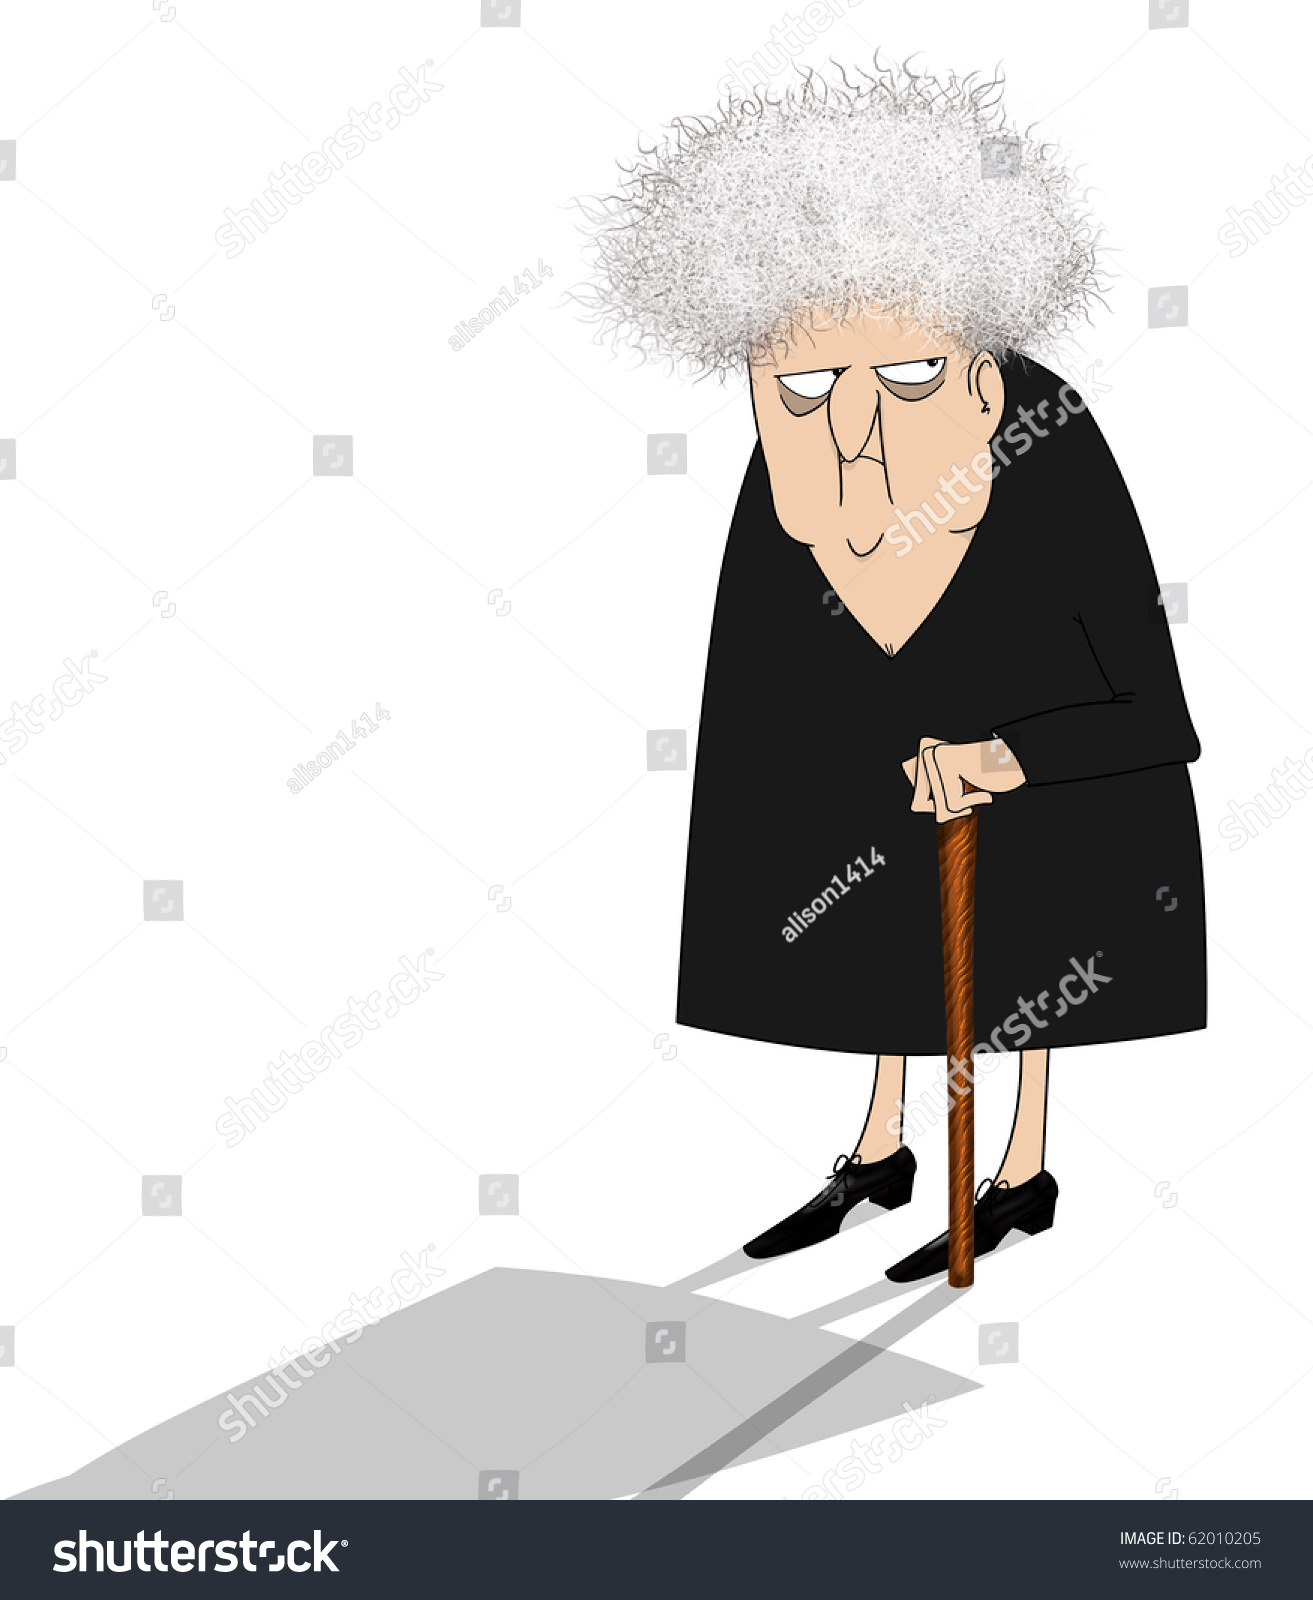 Funny looking old woman